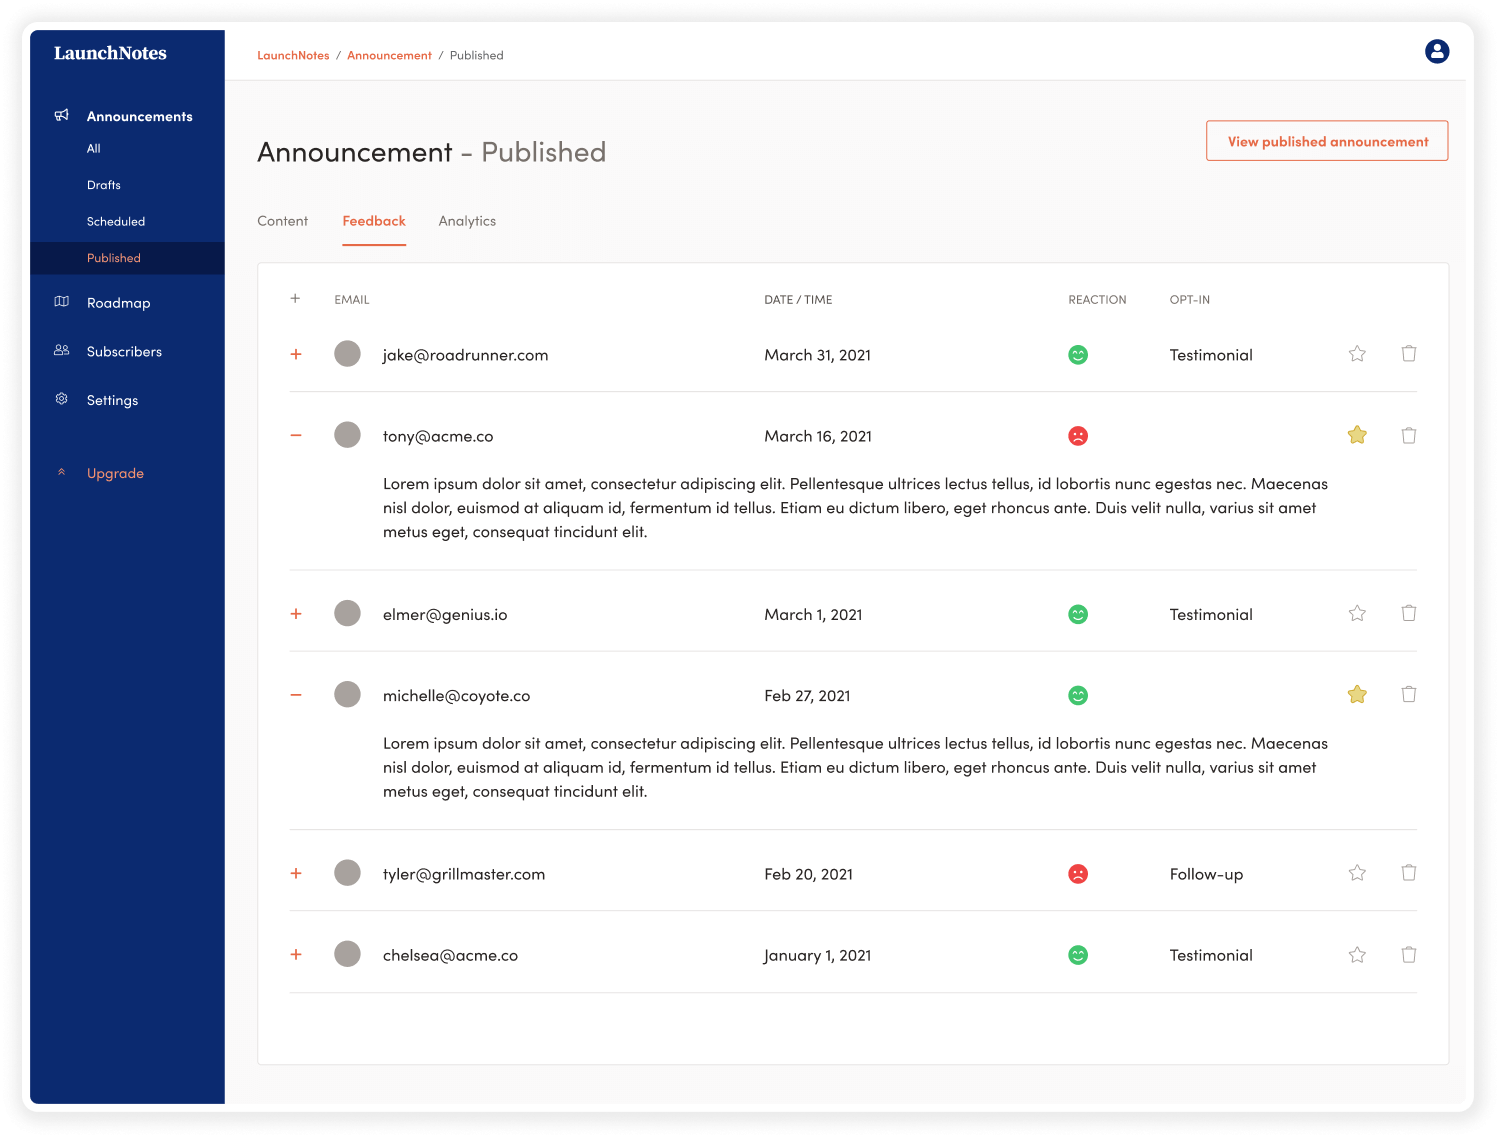 launchnotes_customer_feedback_manager_beta.png